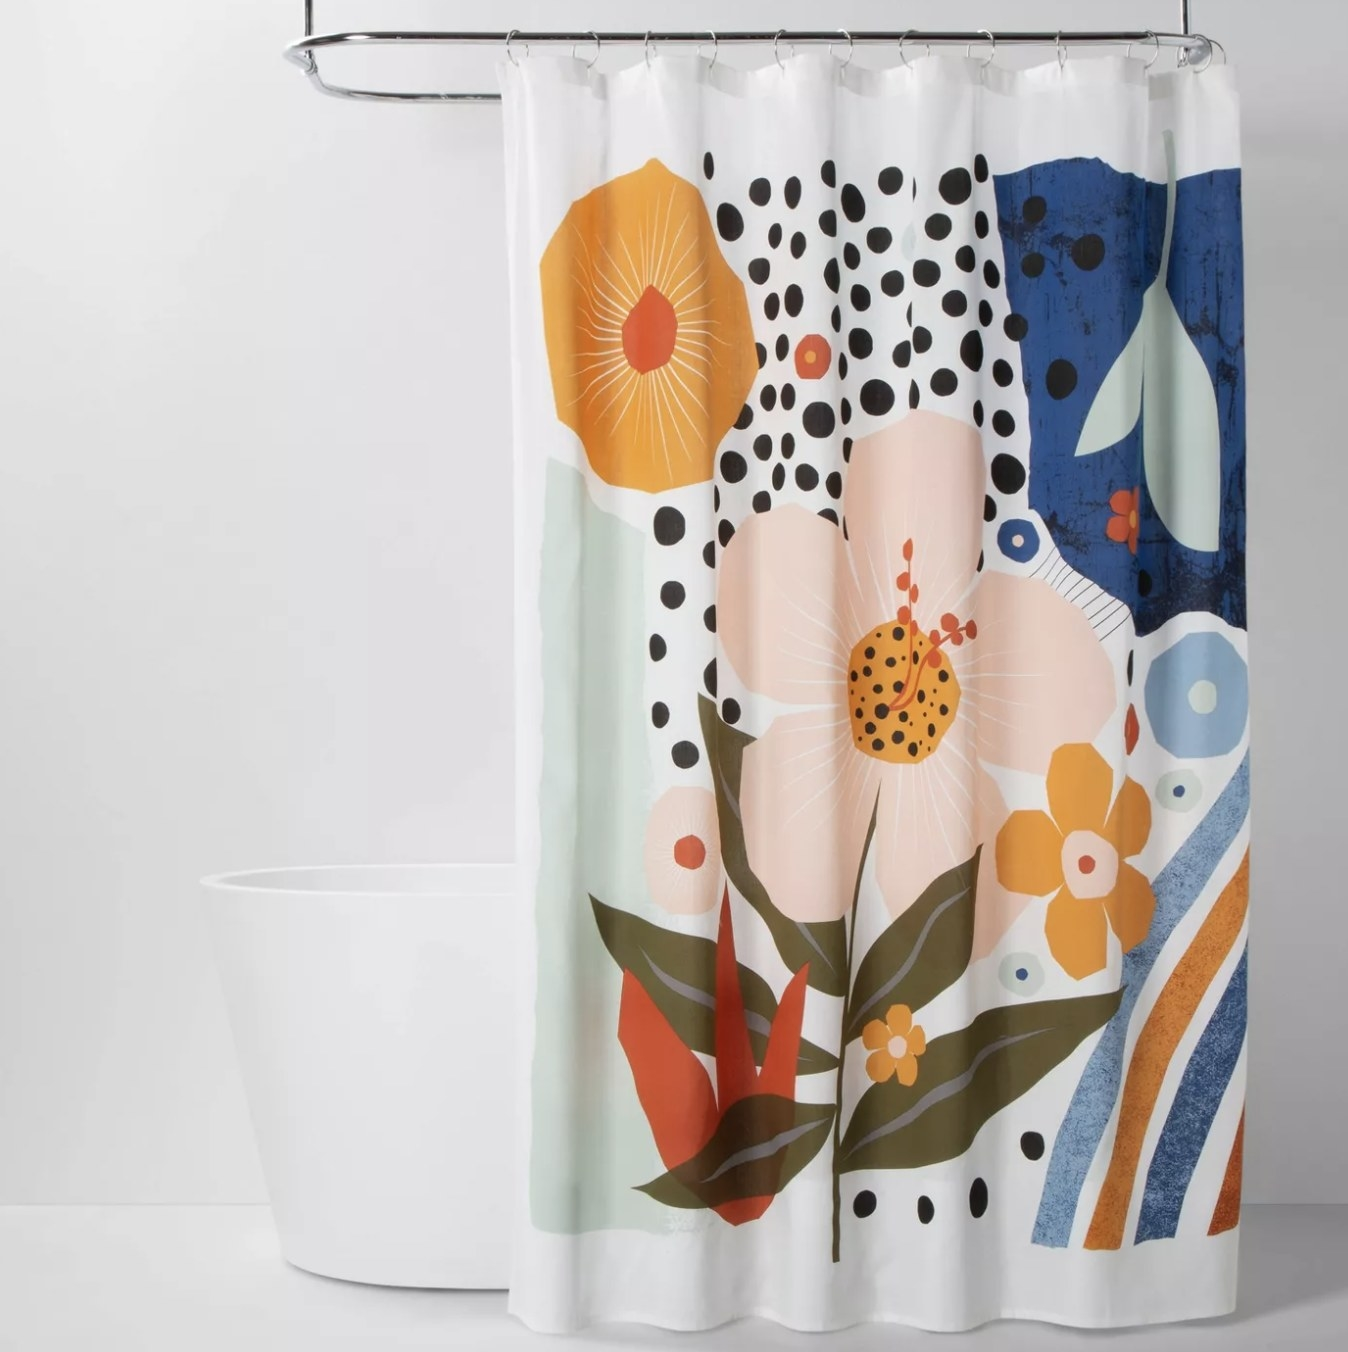 The shower curtain with bold shapes and patterns